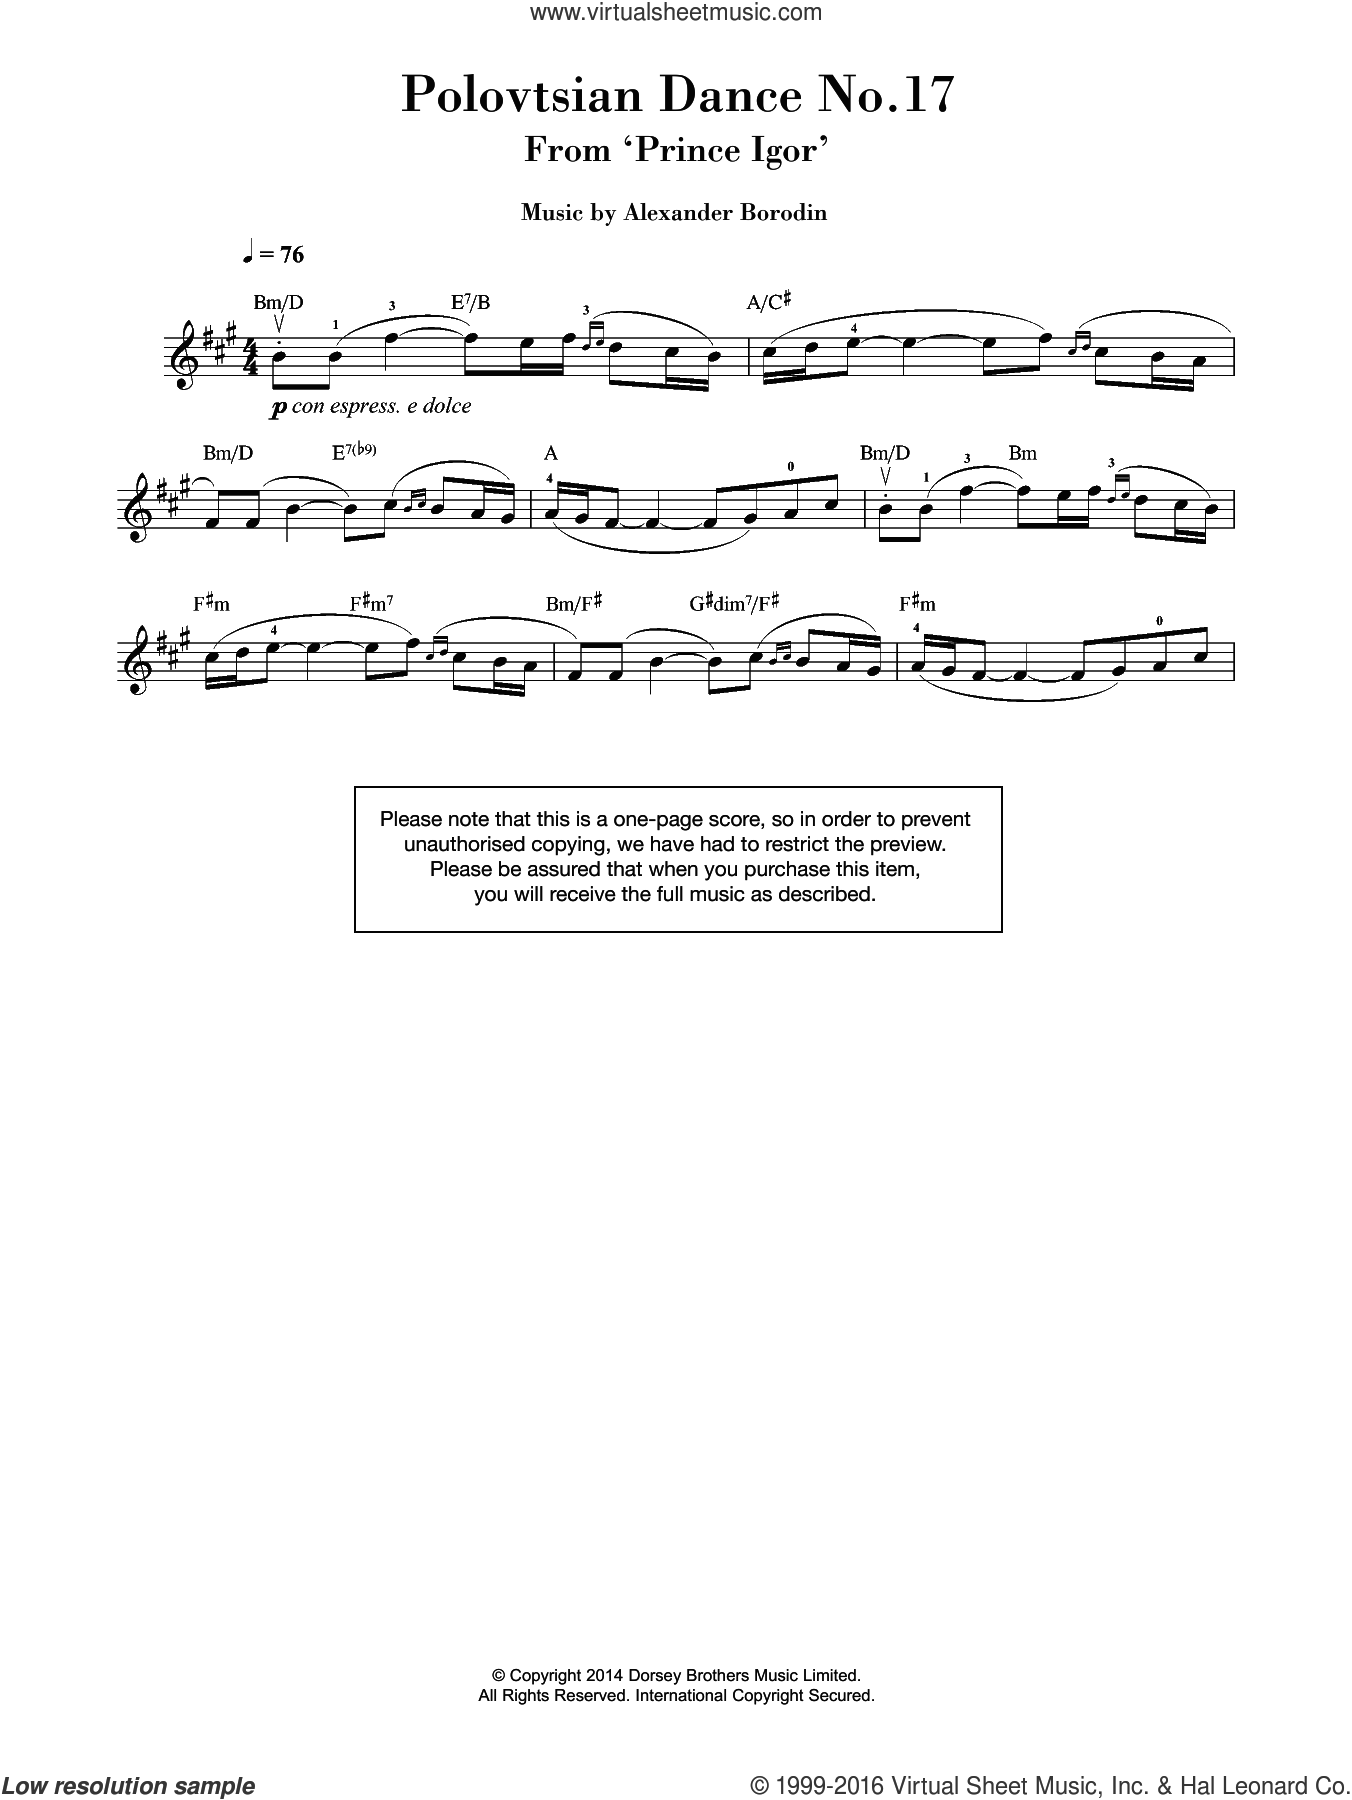 Polovtsian Dance No.17 (from 'Prince Igor') sheet music for violin solo by Alexander Borodin. Score Image Preview.